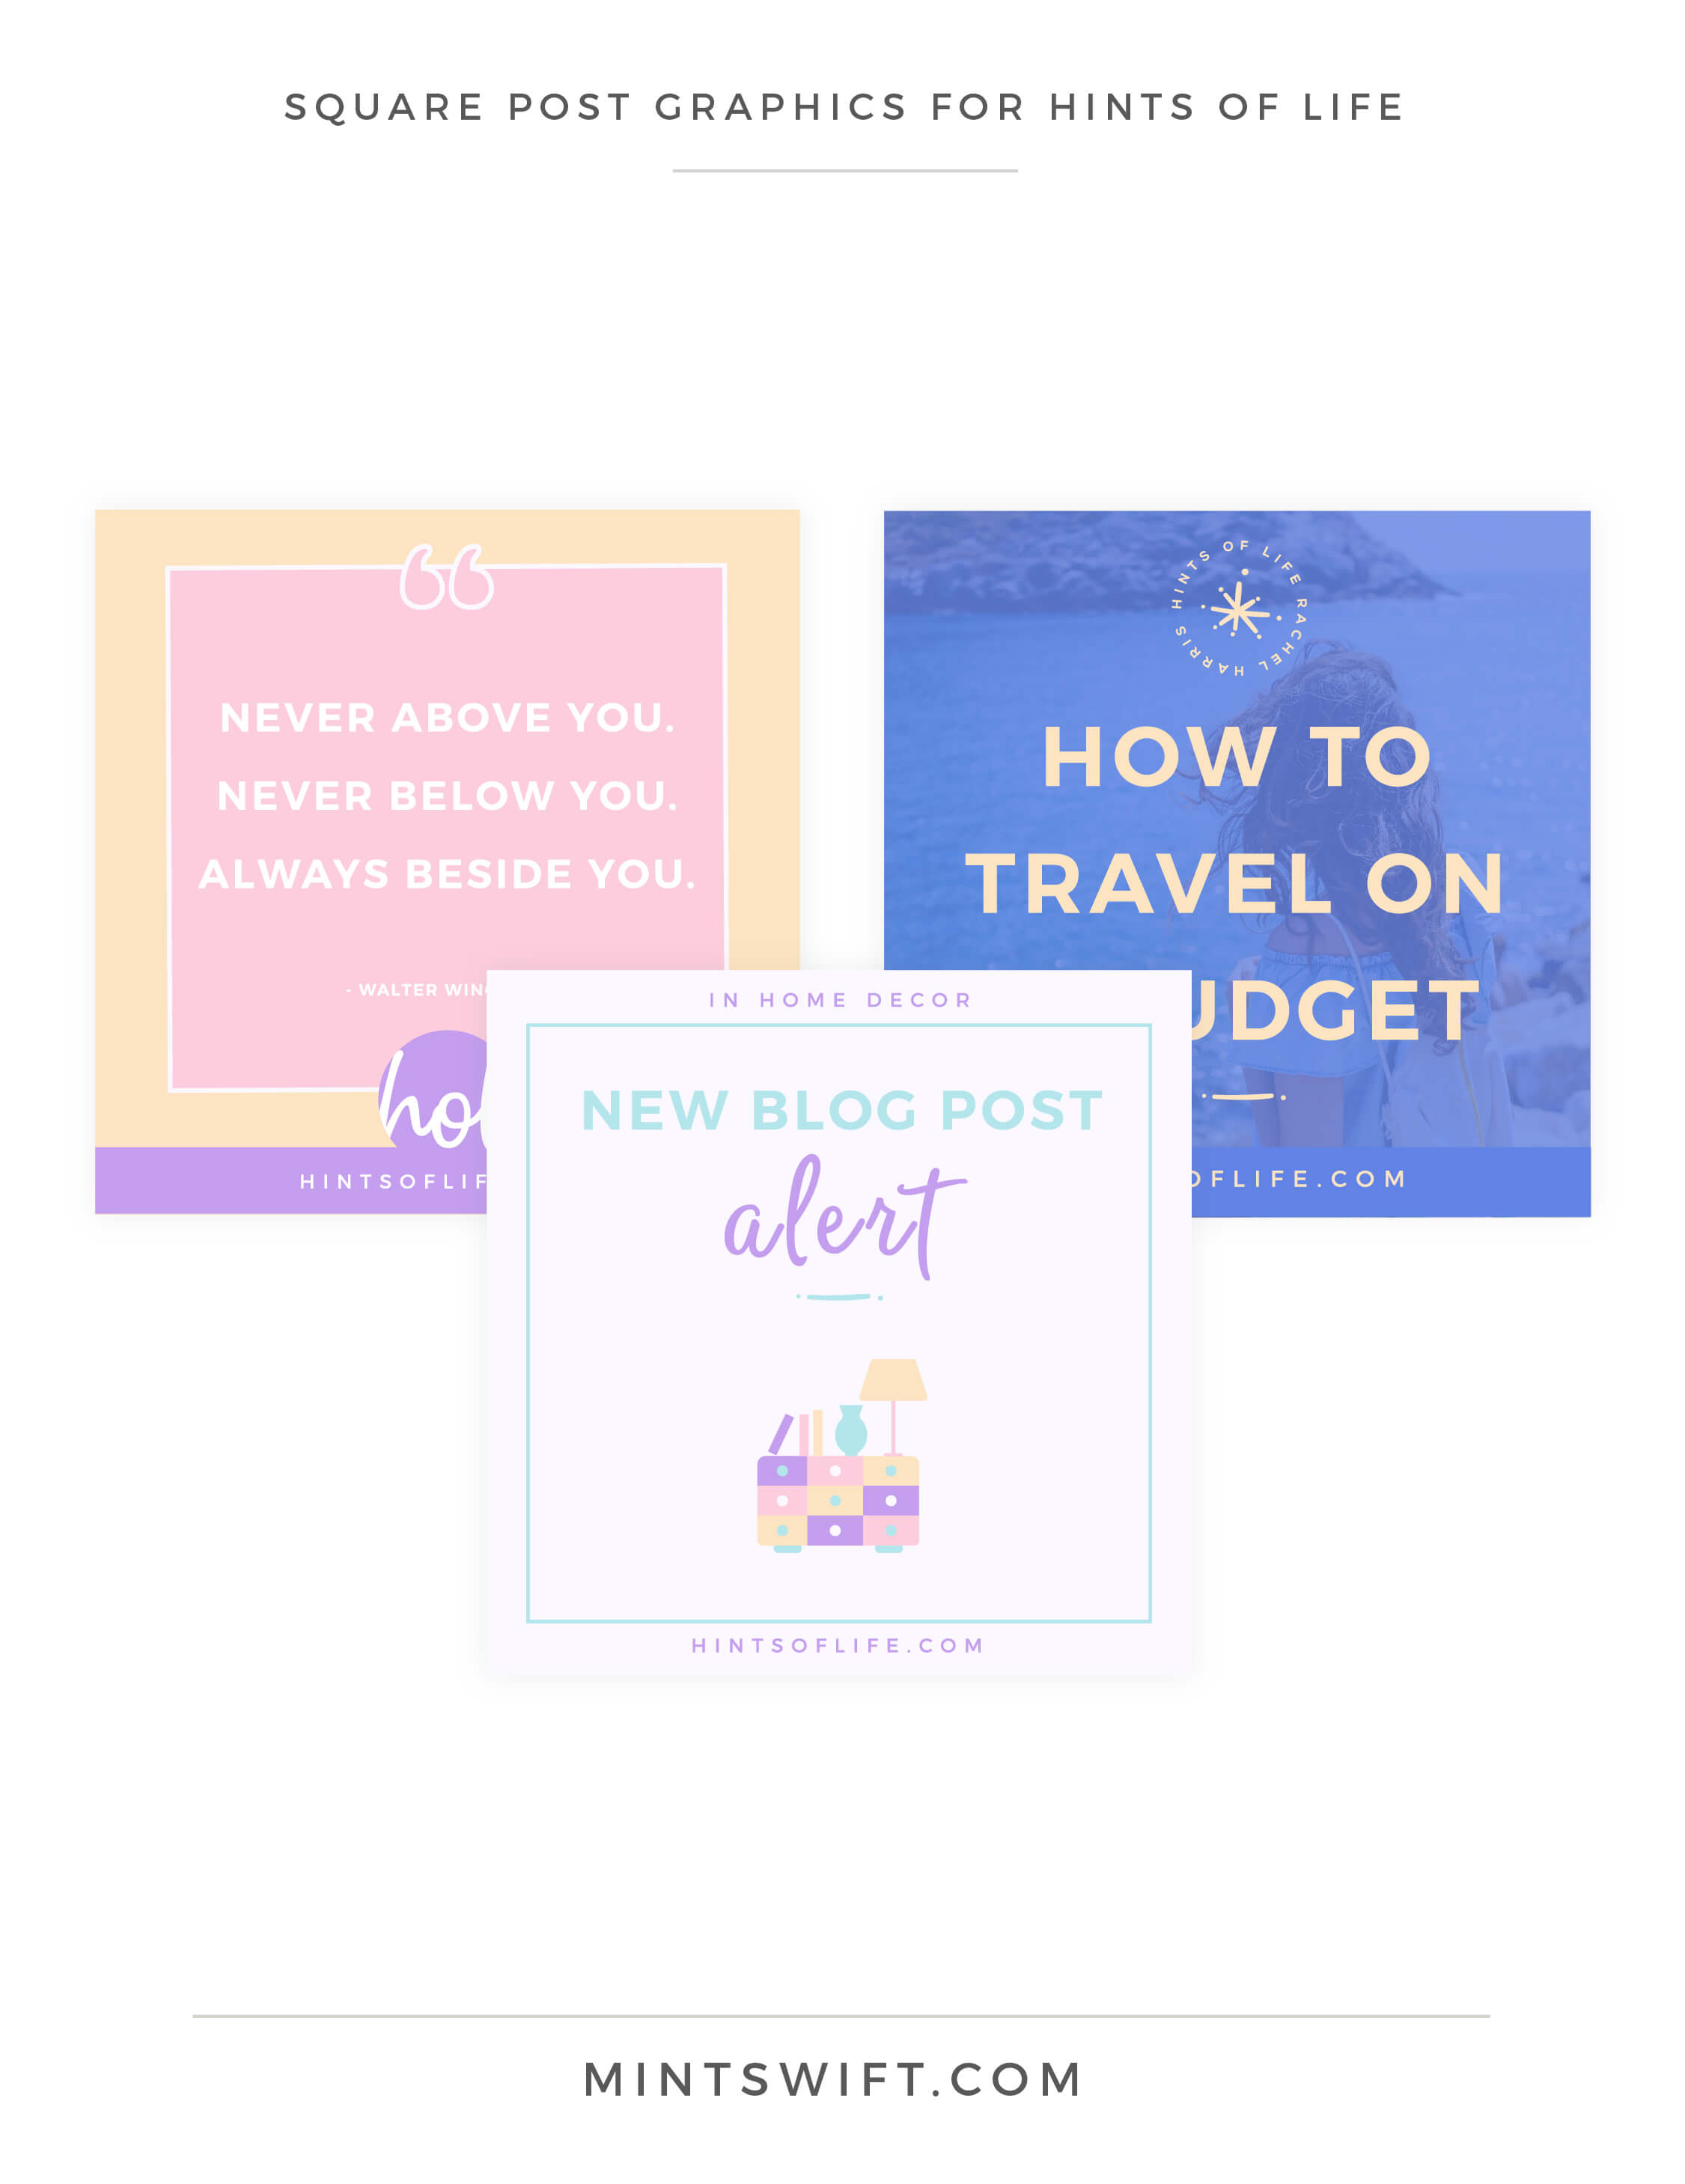 Hints of Life - Square Post Graphics - Brand Design Package - MintSwift